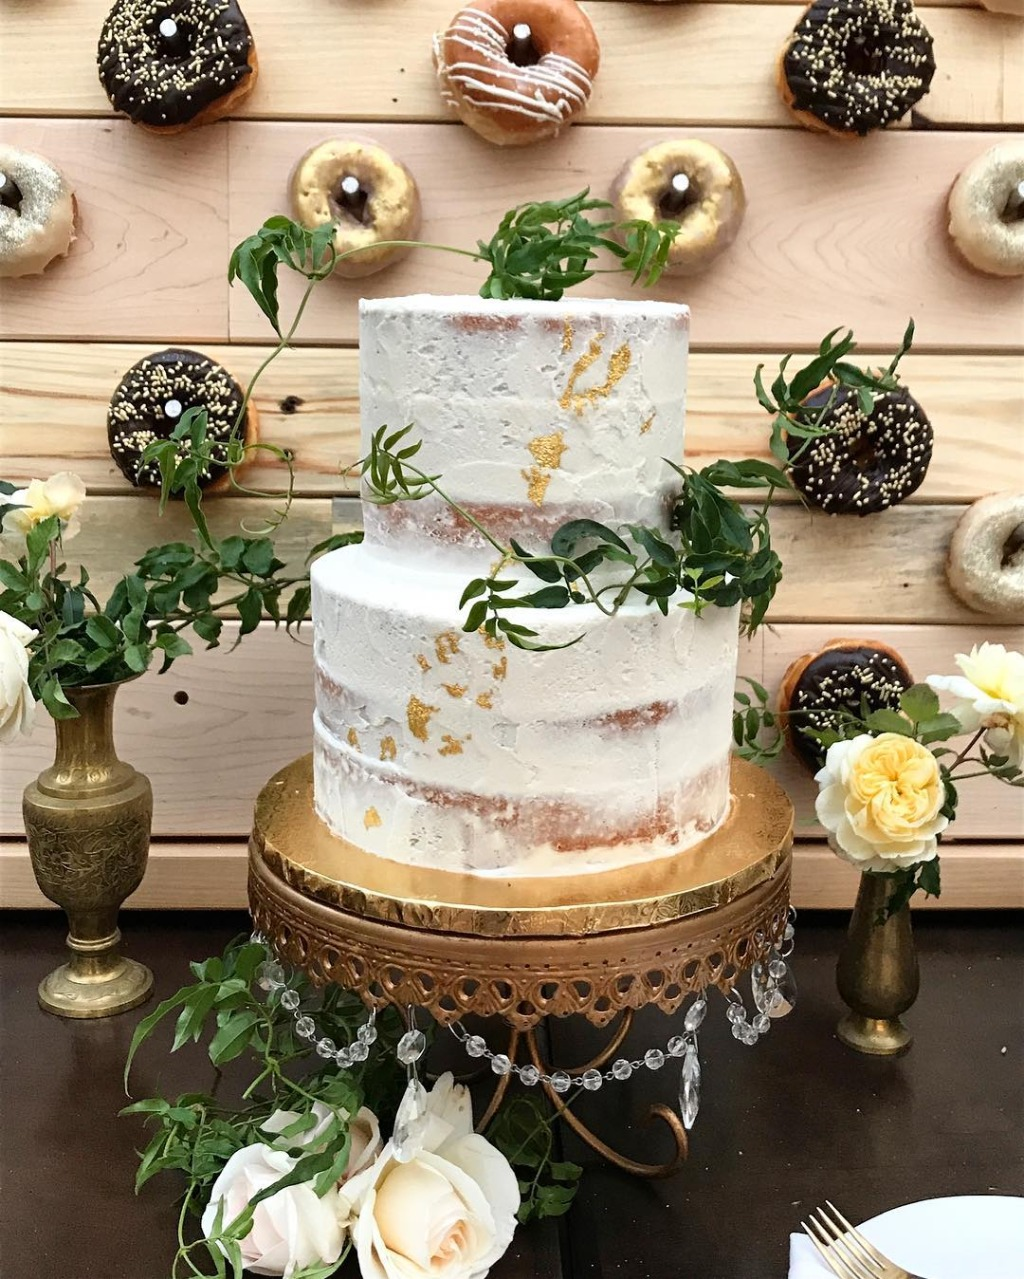 Wedding Cake & Donut Walls!! by Plumeria Cake Studio with wedding cake stand by Opulent Treasures. Opulent Treasures offers entertaining